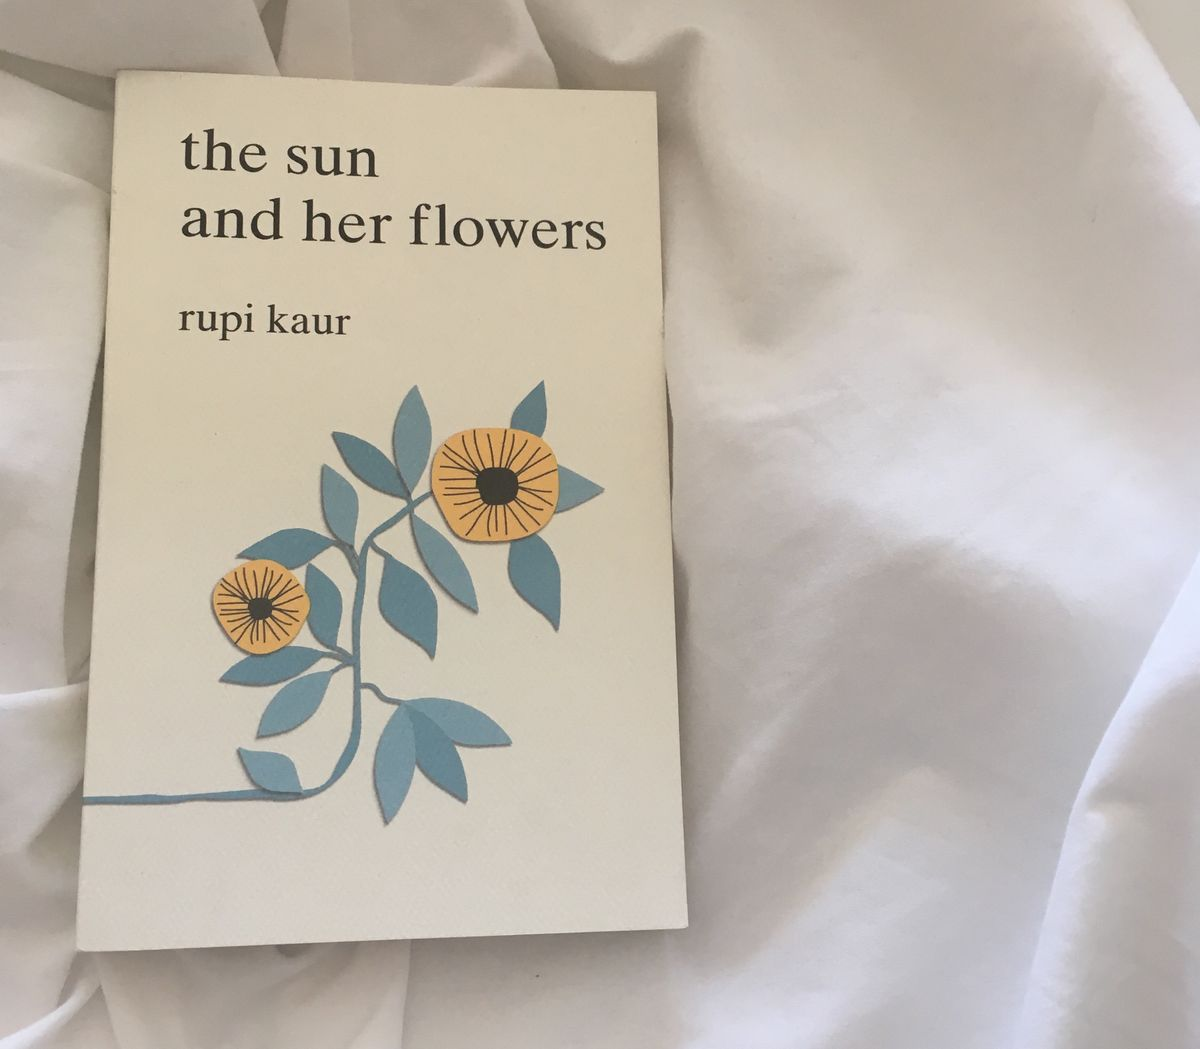 21 Quotes From Rupi Kaur's New Book That Are Perfect For Instagram